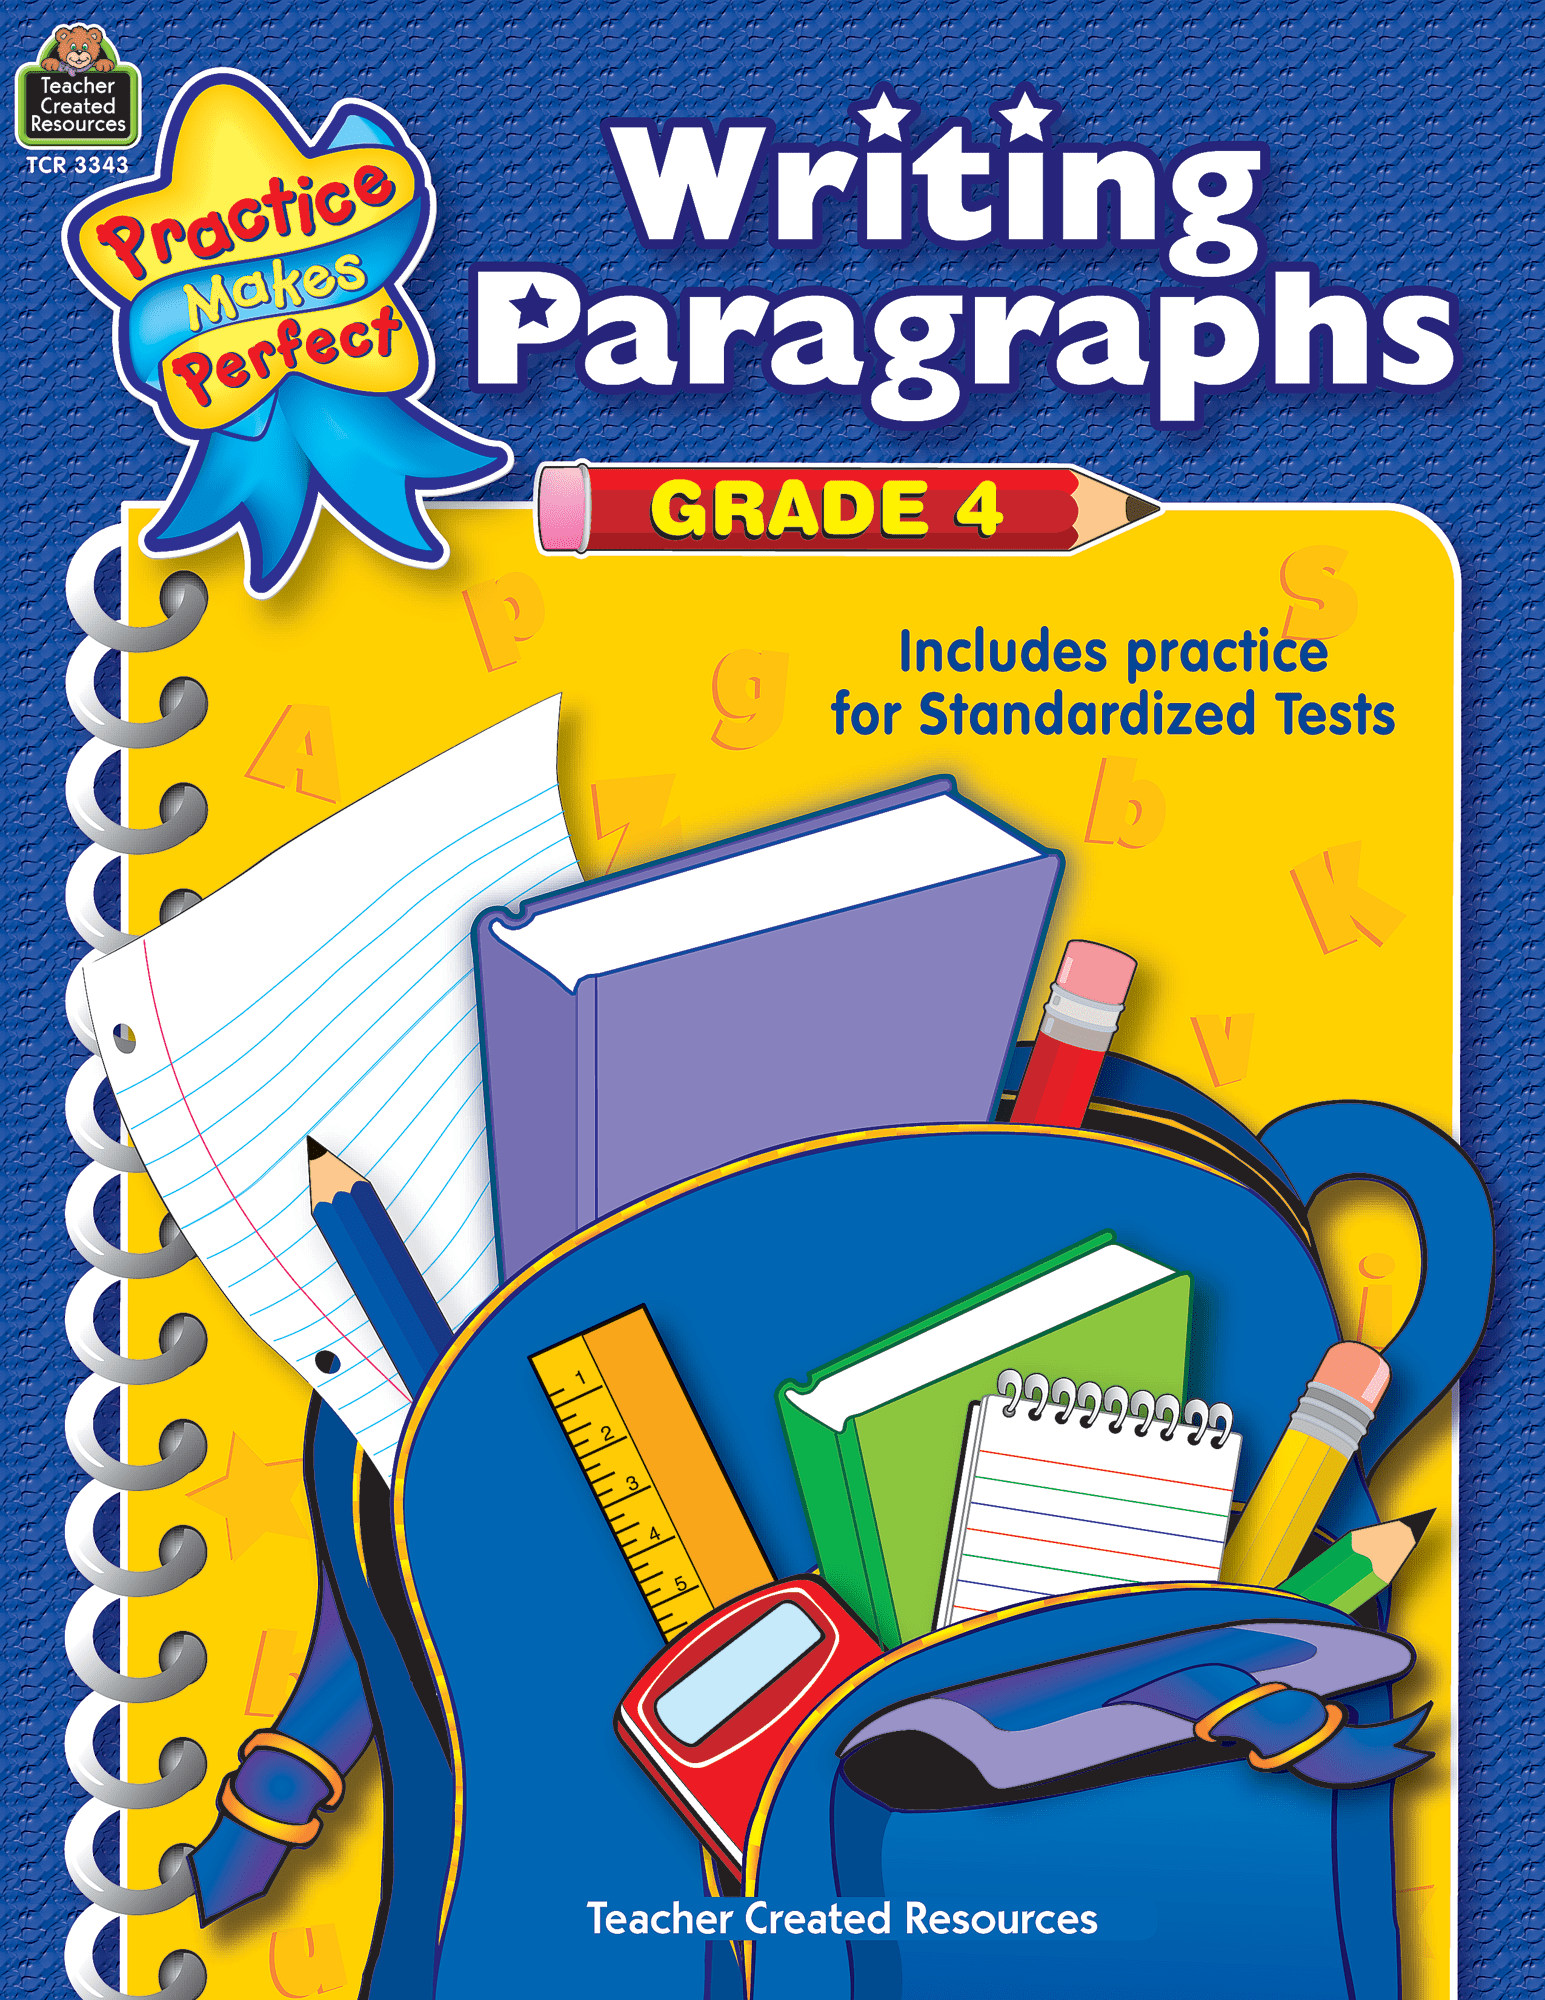 Writing Paragraphs Grade 4